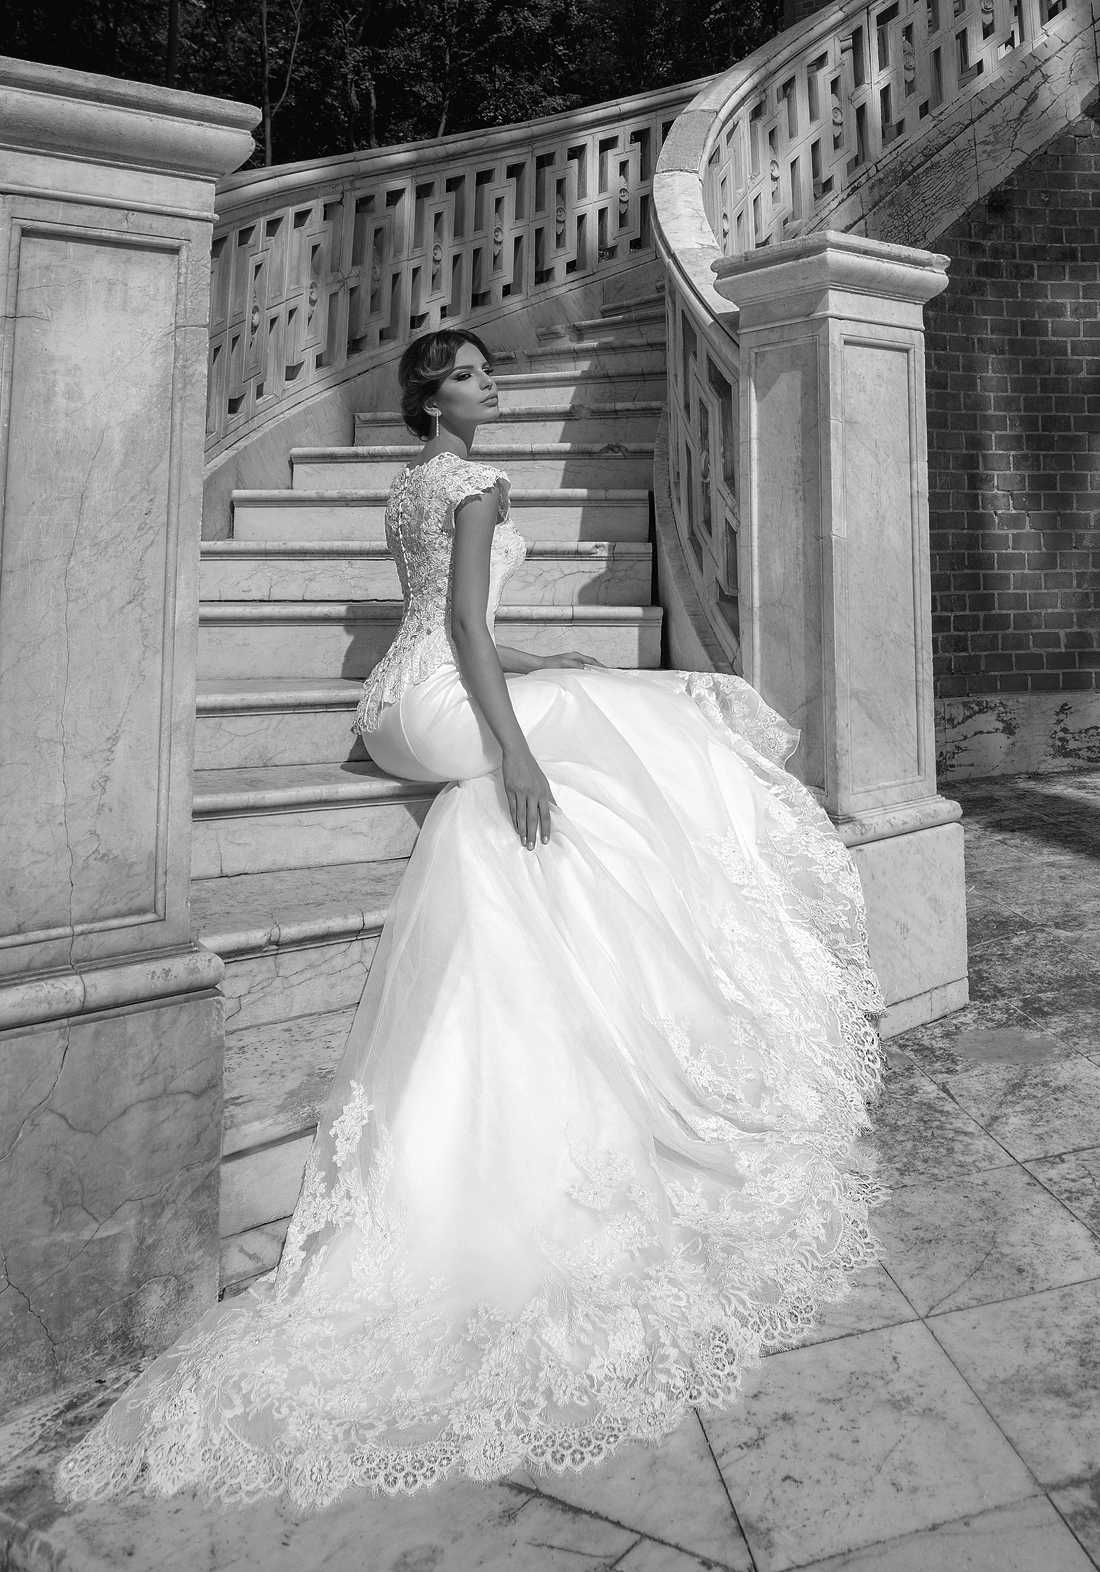 bien-savvy-wedding-dresses-2014-collection-17-01232014